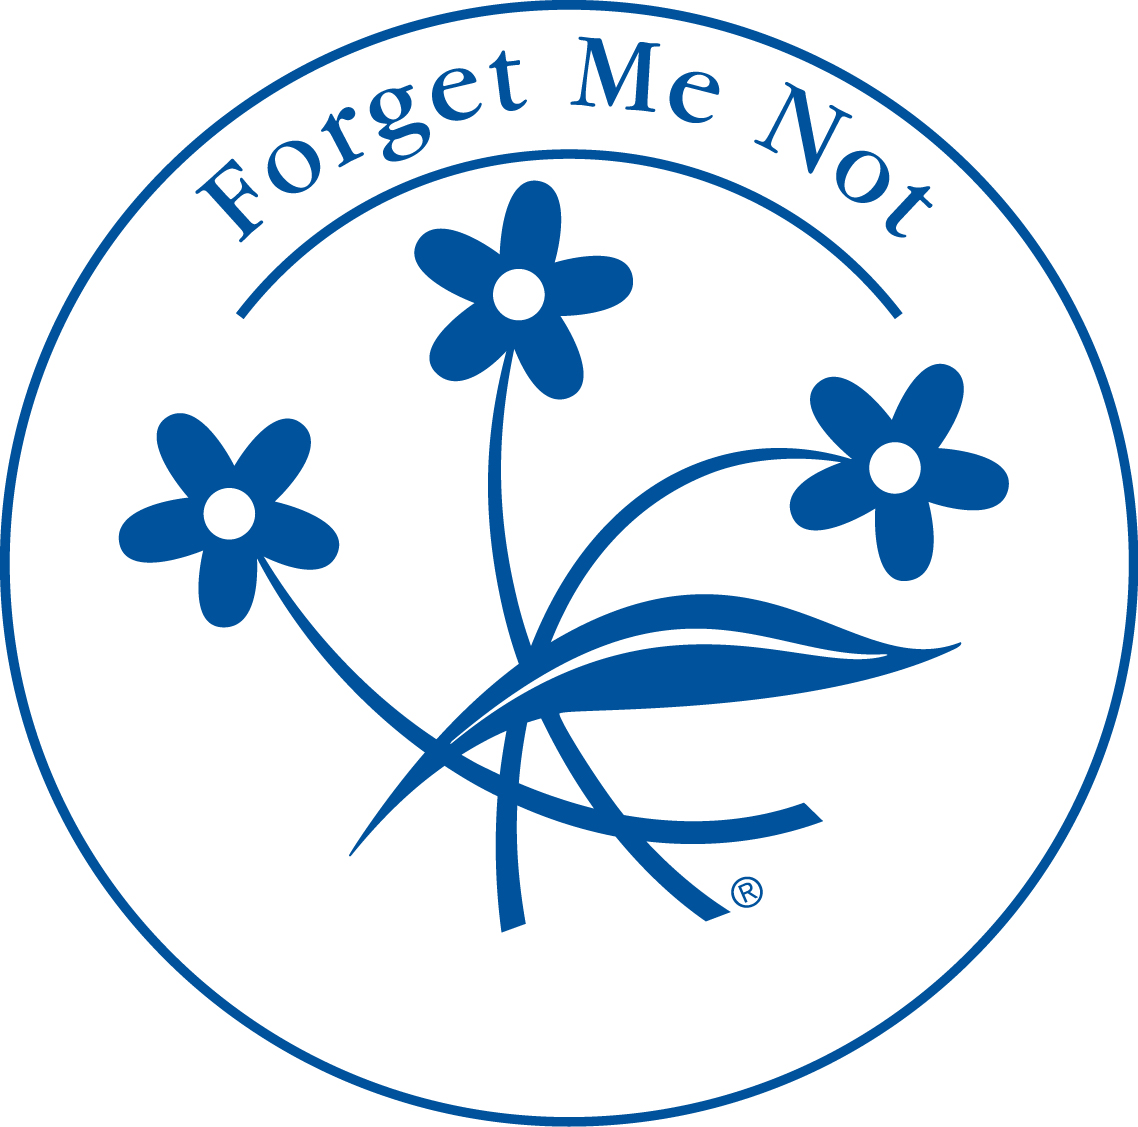 Forget Me Not symbol